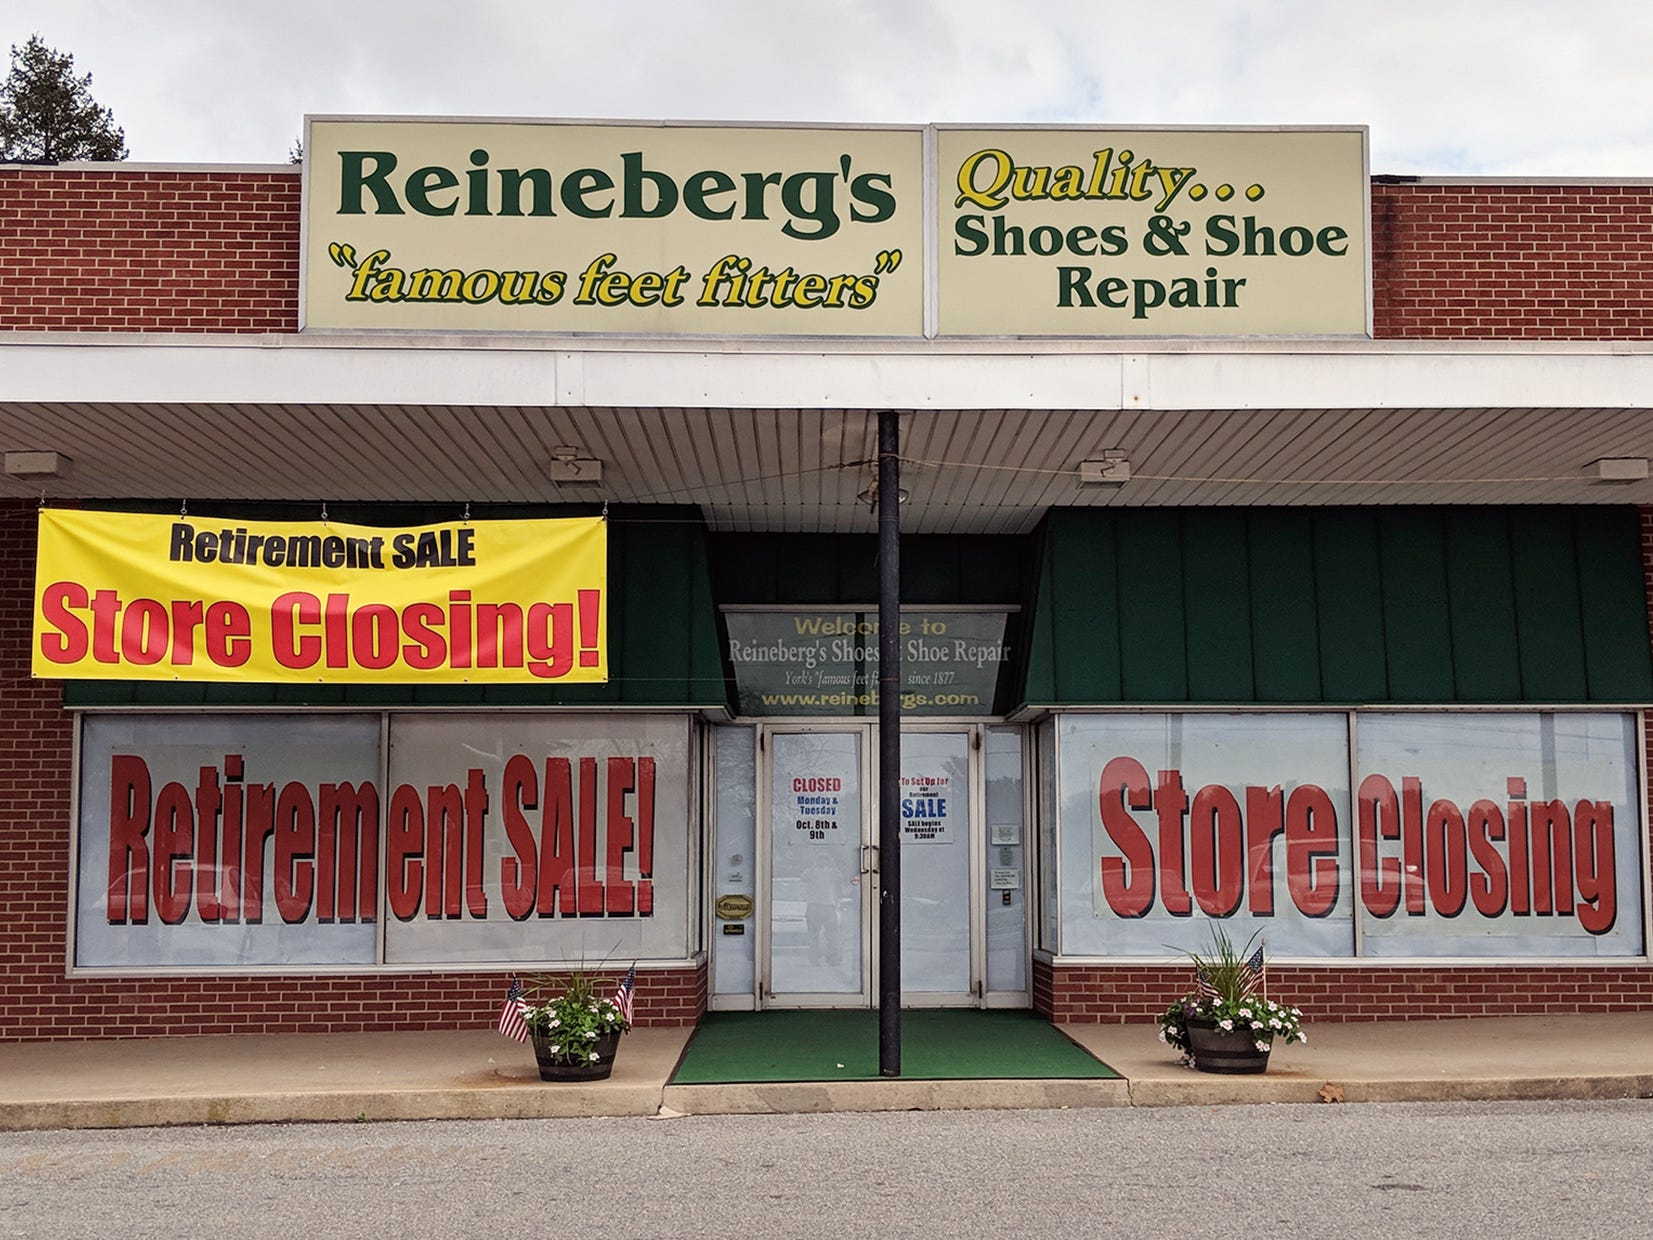 Reineberg's shoe store, in Springettsbury Township, is going out of business after 141 years, first opening in downtown York. The owners are retiring.